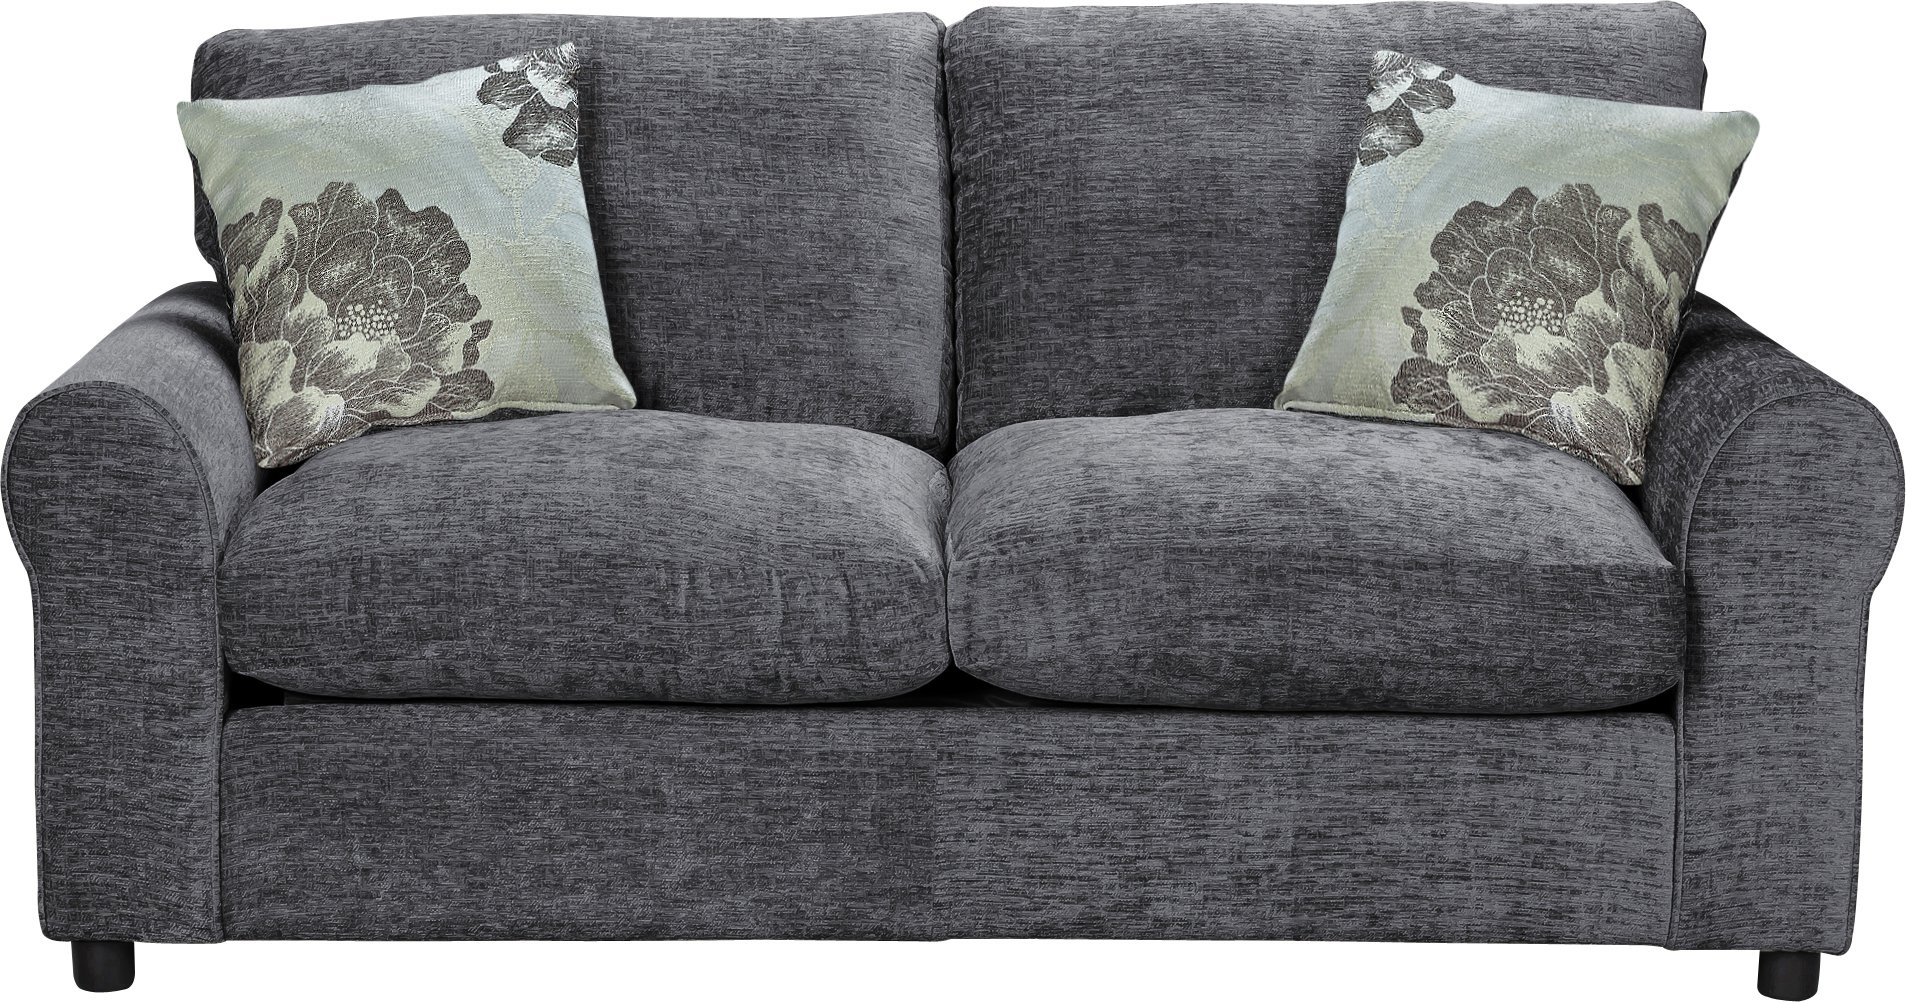 Sofa Beds  Chair Beds   Futons   Bed Settees   Argos Argos Home Tessa 2 Seater Fabric Sofa Bed   Charcoal